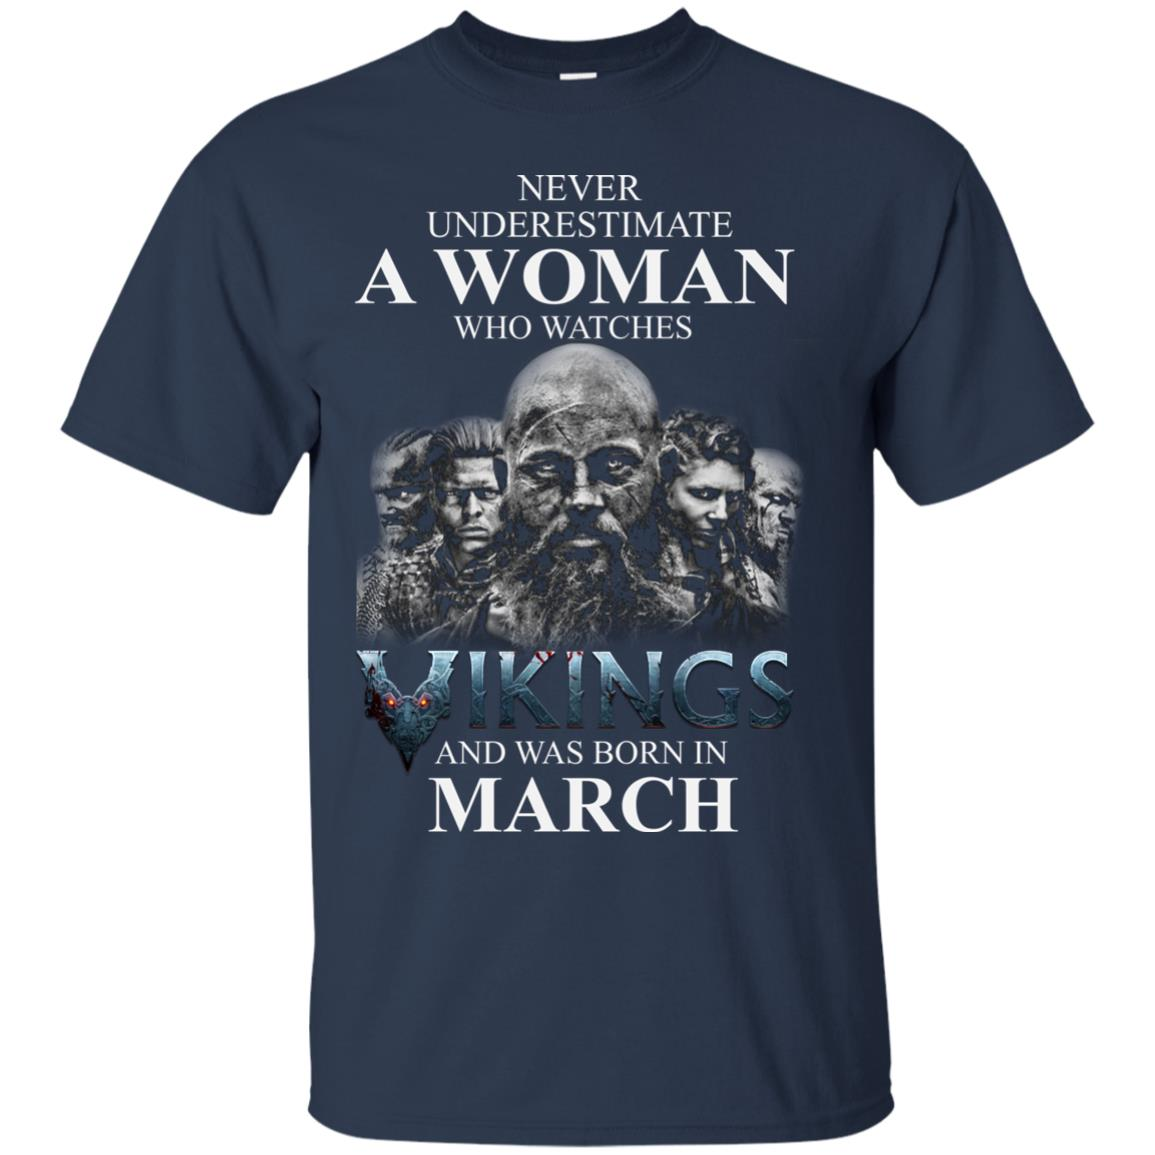 image 1328 - Never Underestimate A woman who watches Vikings and was born in March shirt